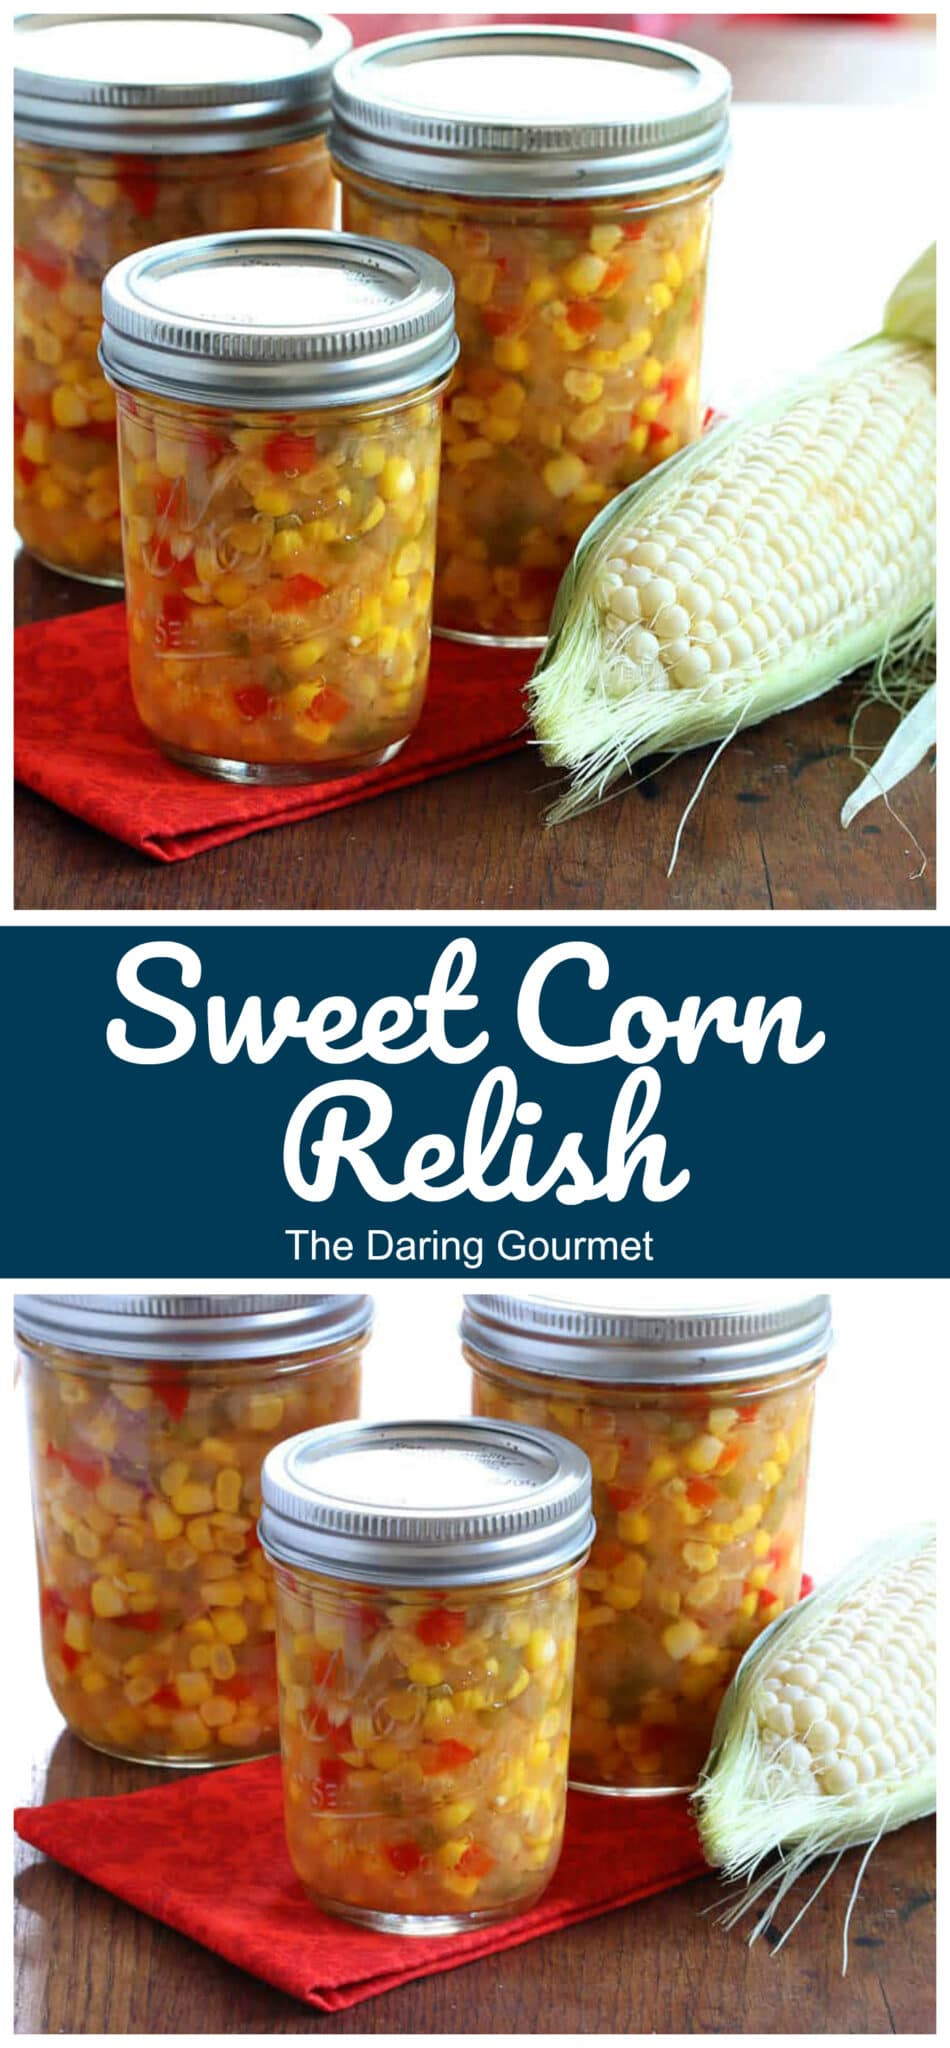 corn relish recipe best homemade sweet peppers onions